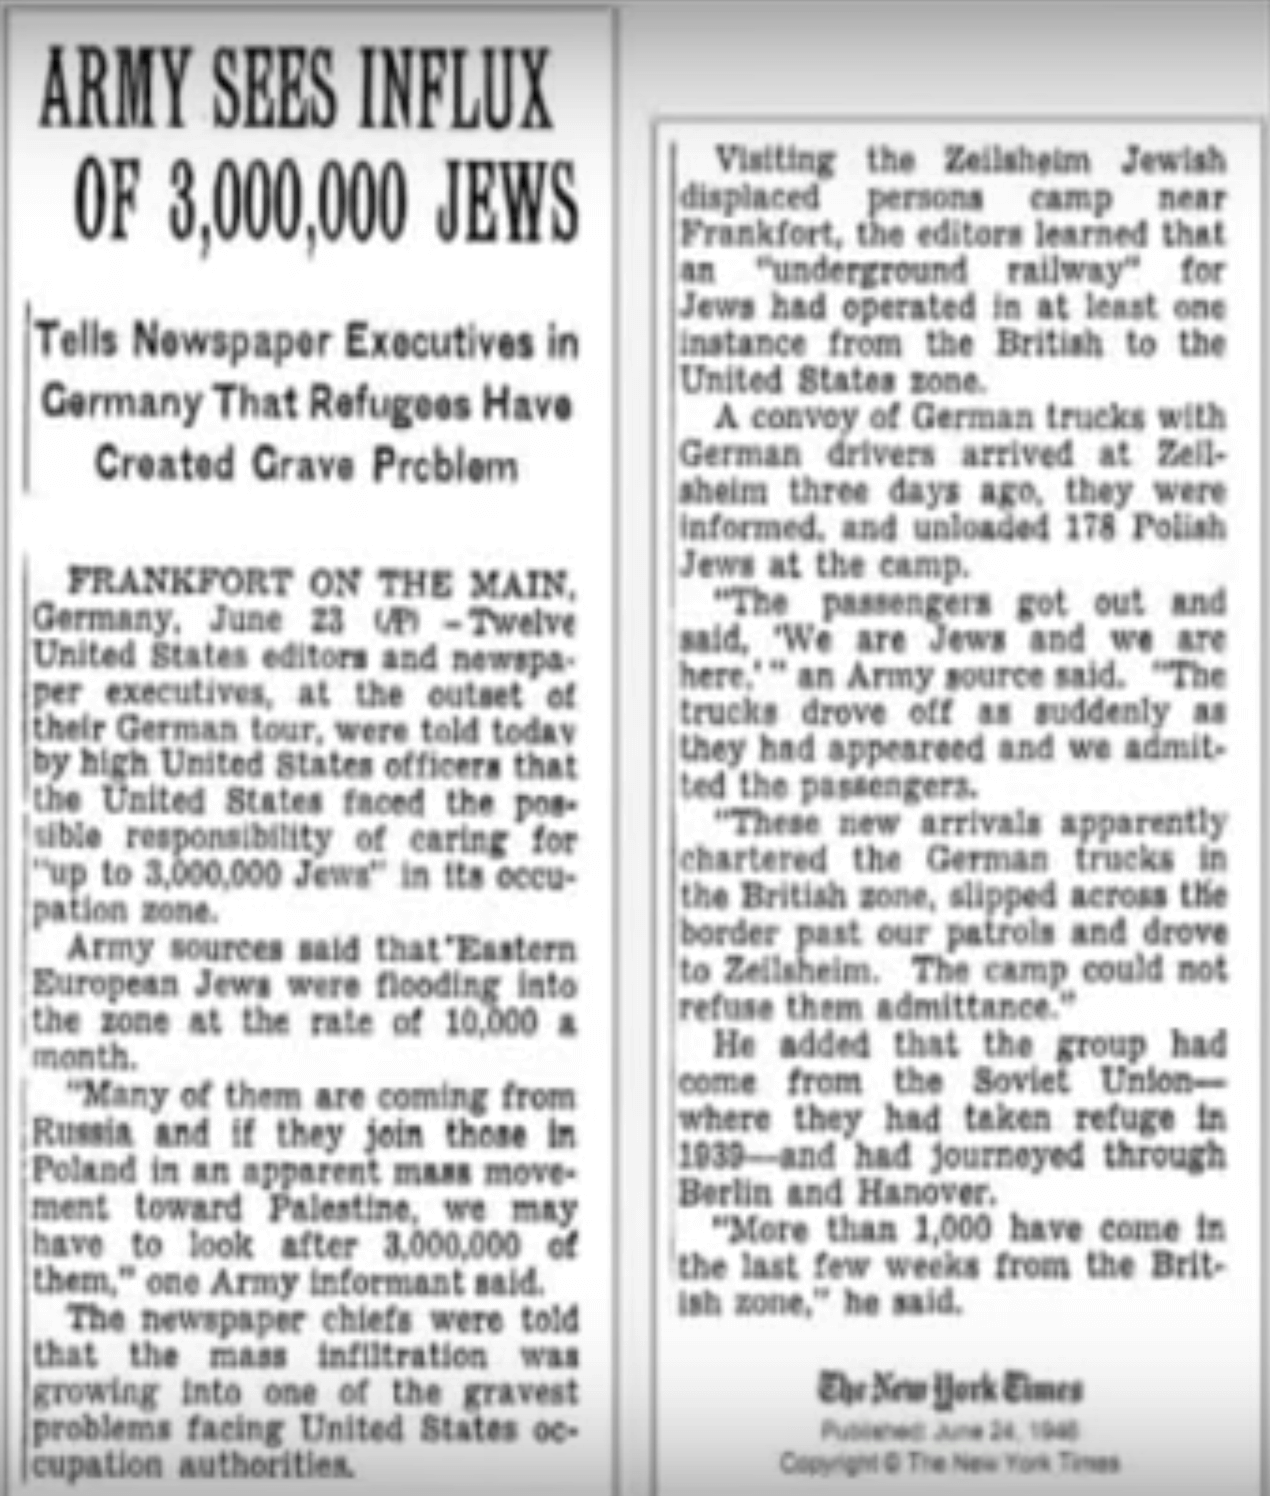 nyt-army-3mill-jews-2.png